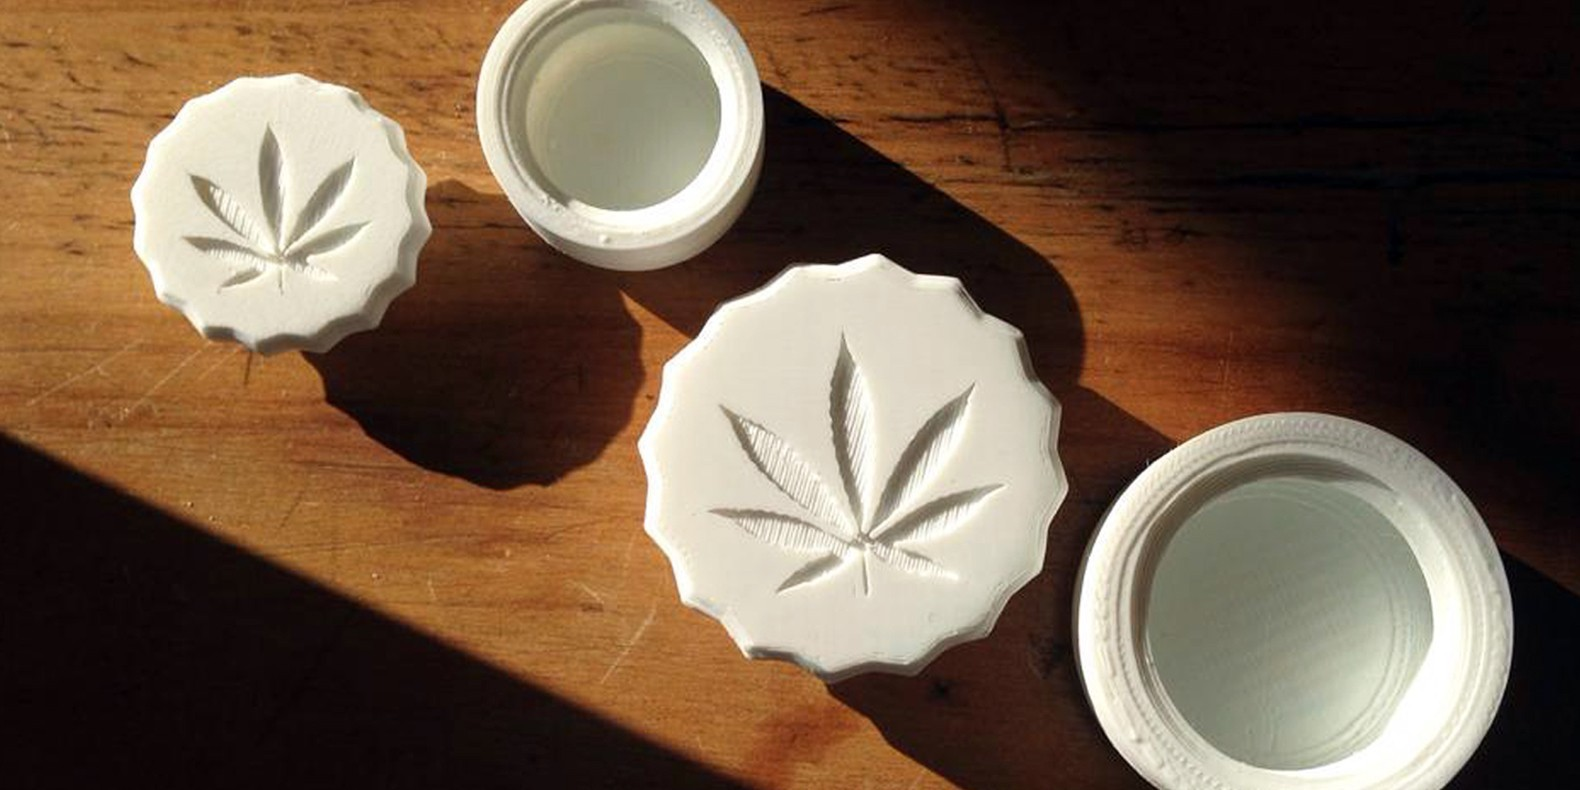 Here is a selection of the best cannabis use related 3D models to make with a 3D printer